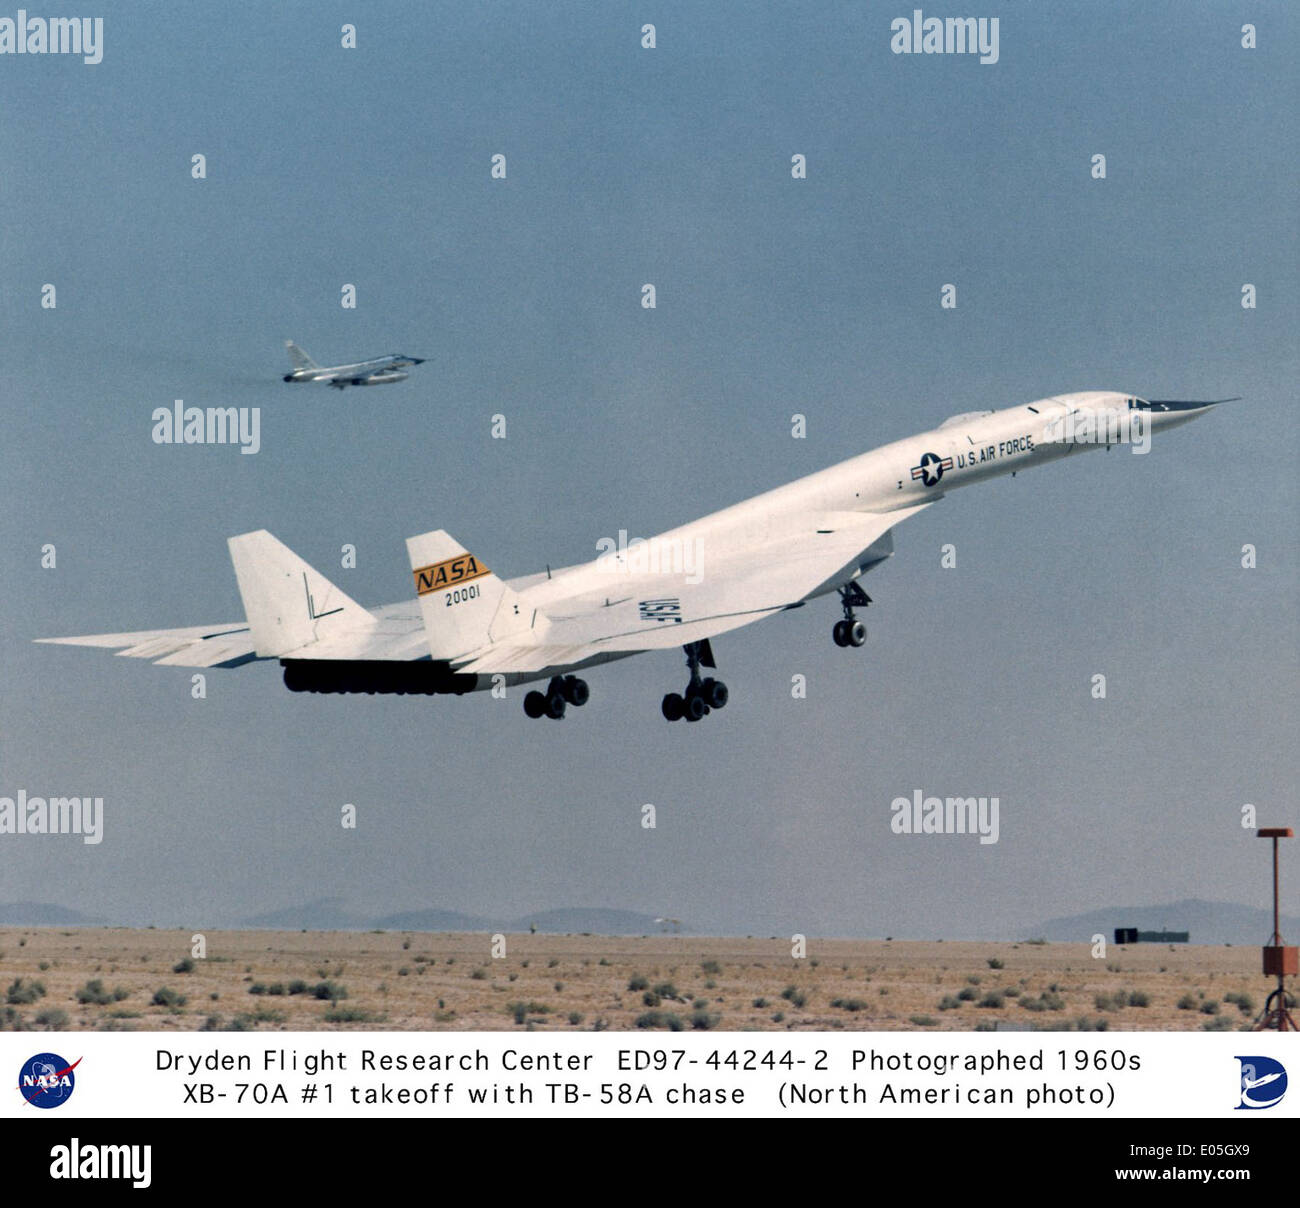 XB-70A #1 liftoff with TB-58A chase aircraft - Stock Image